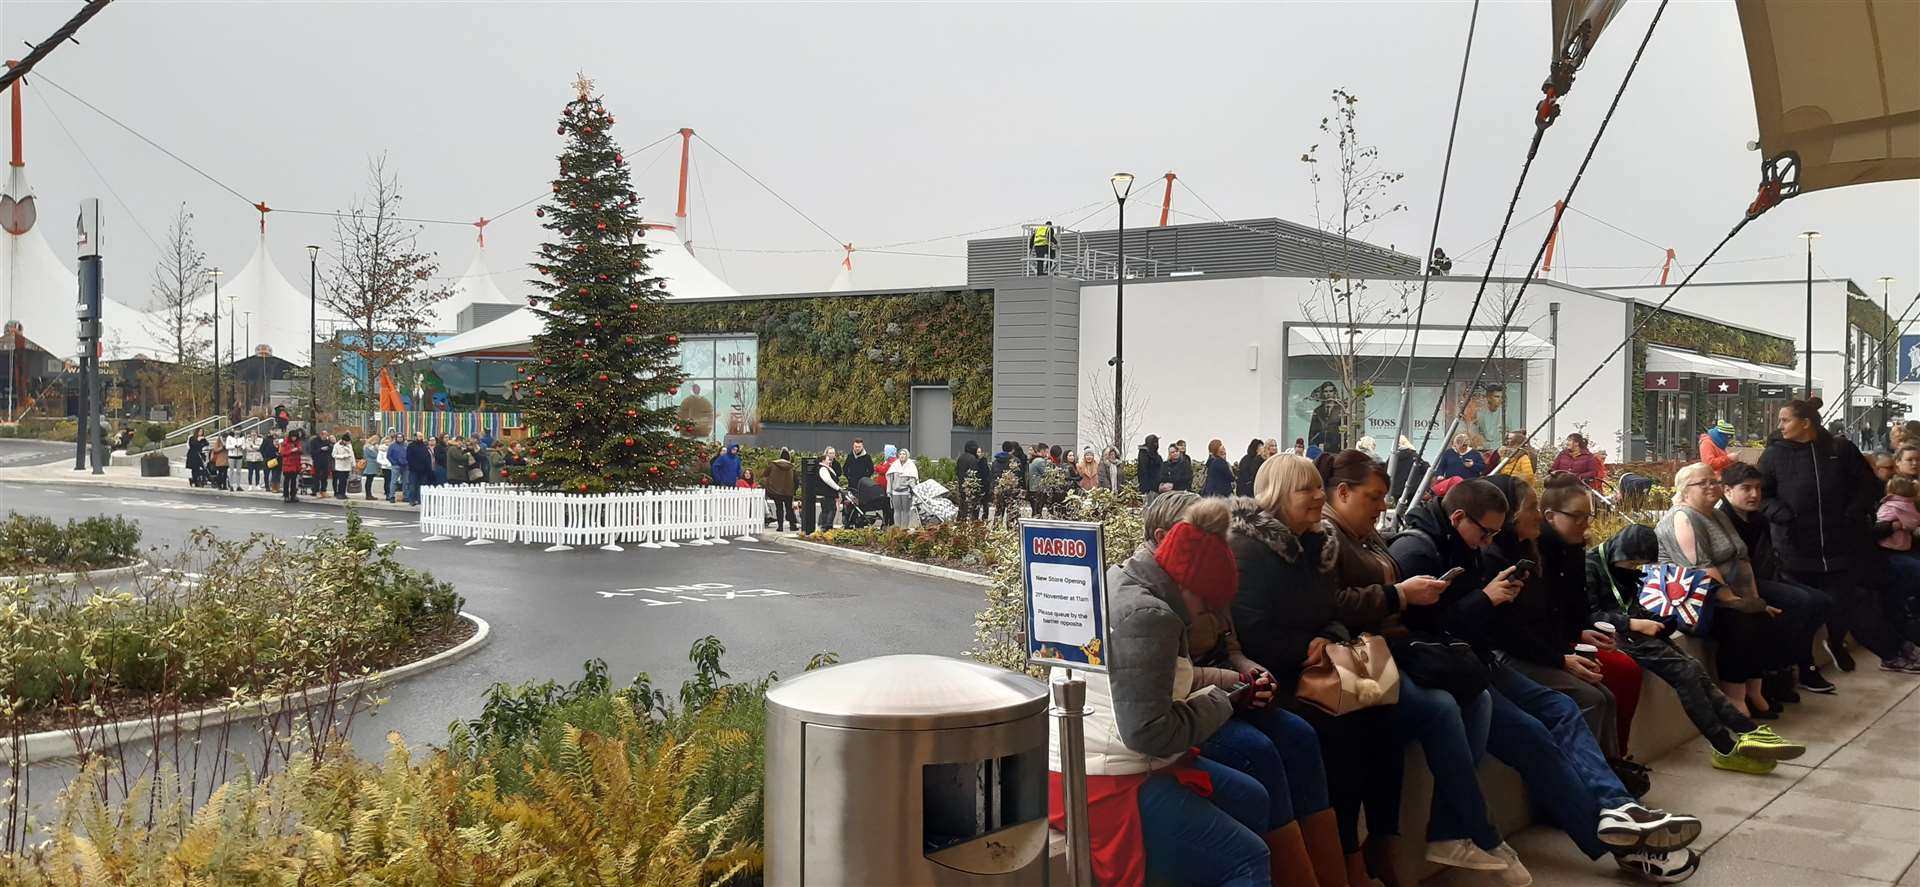 Huge queues have formed ahead of the 11am opening of the new Haribo store in the Ashford Designer Outlet